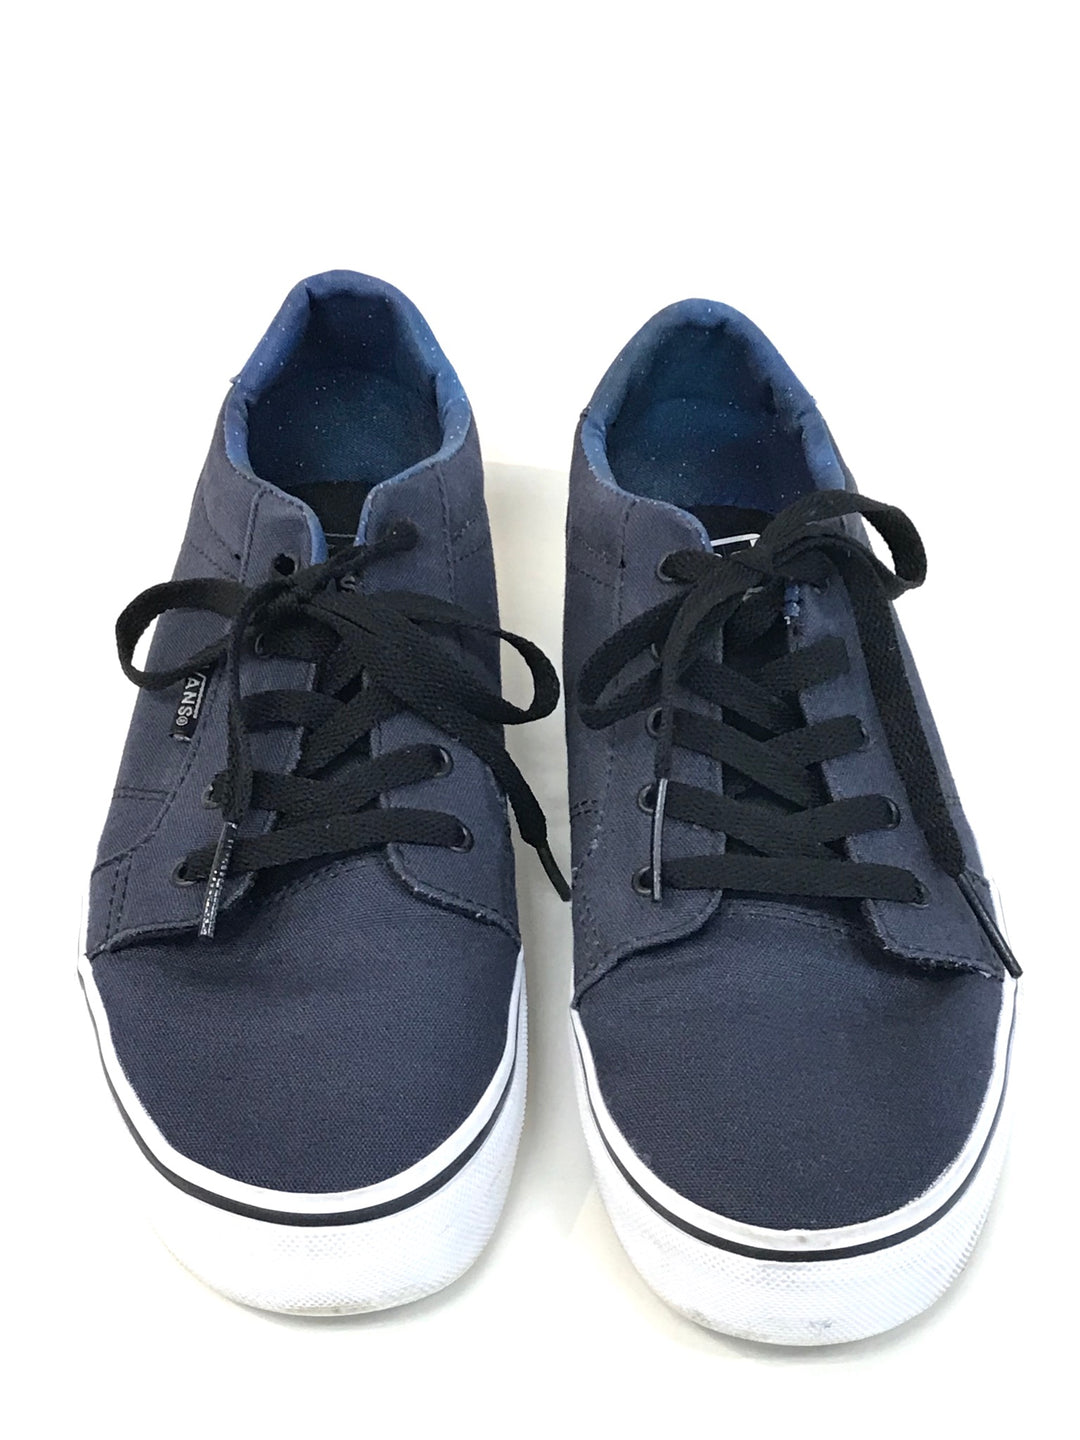 Primary Photo - BRAND: VANS <BR>STYLE: SHOES ATHLETIC <BR>COLOR: NAVY <BR>SIZE: 6 <BR>SKU: 262-26275-62214<BR>GENTLE WEAR SHOWS <BR>FINAL SALE - AS IS